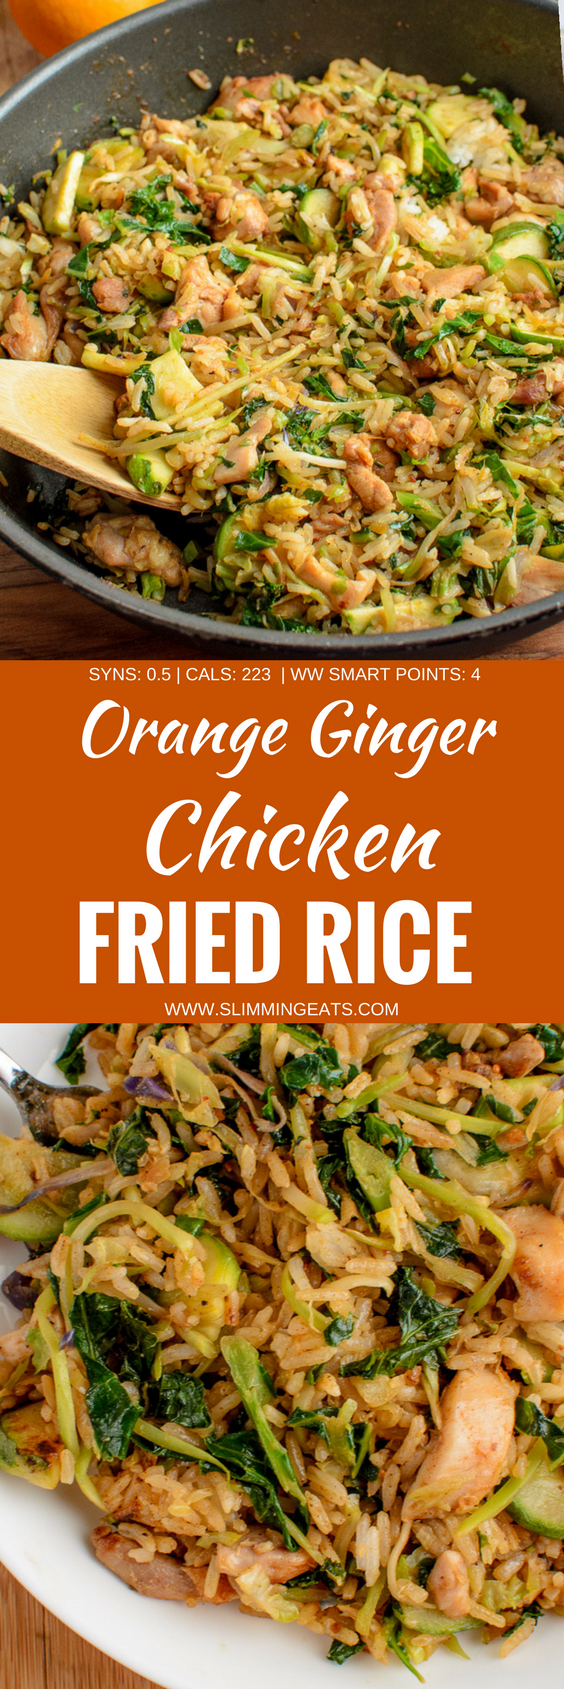 A fragrant delicious twist in this delicious Orange Ginger Chicken Fried Rice - a complete meal in a bowl. Gluten Free, Dairy Free, Slimming World and Weight Watchers friendly. SYNS: 0.5 | CALORIES: 223 | WEIGHT WATCHERS SMART POINTS: 4 | www.slimmingeats.com